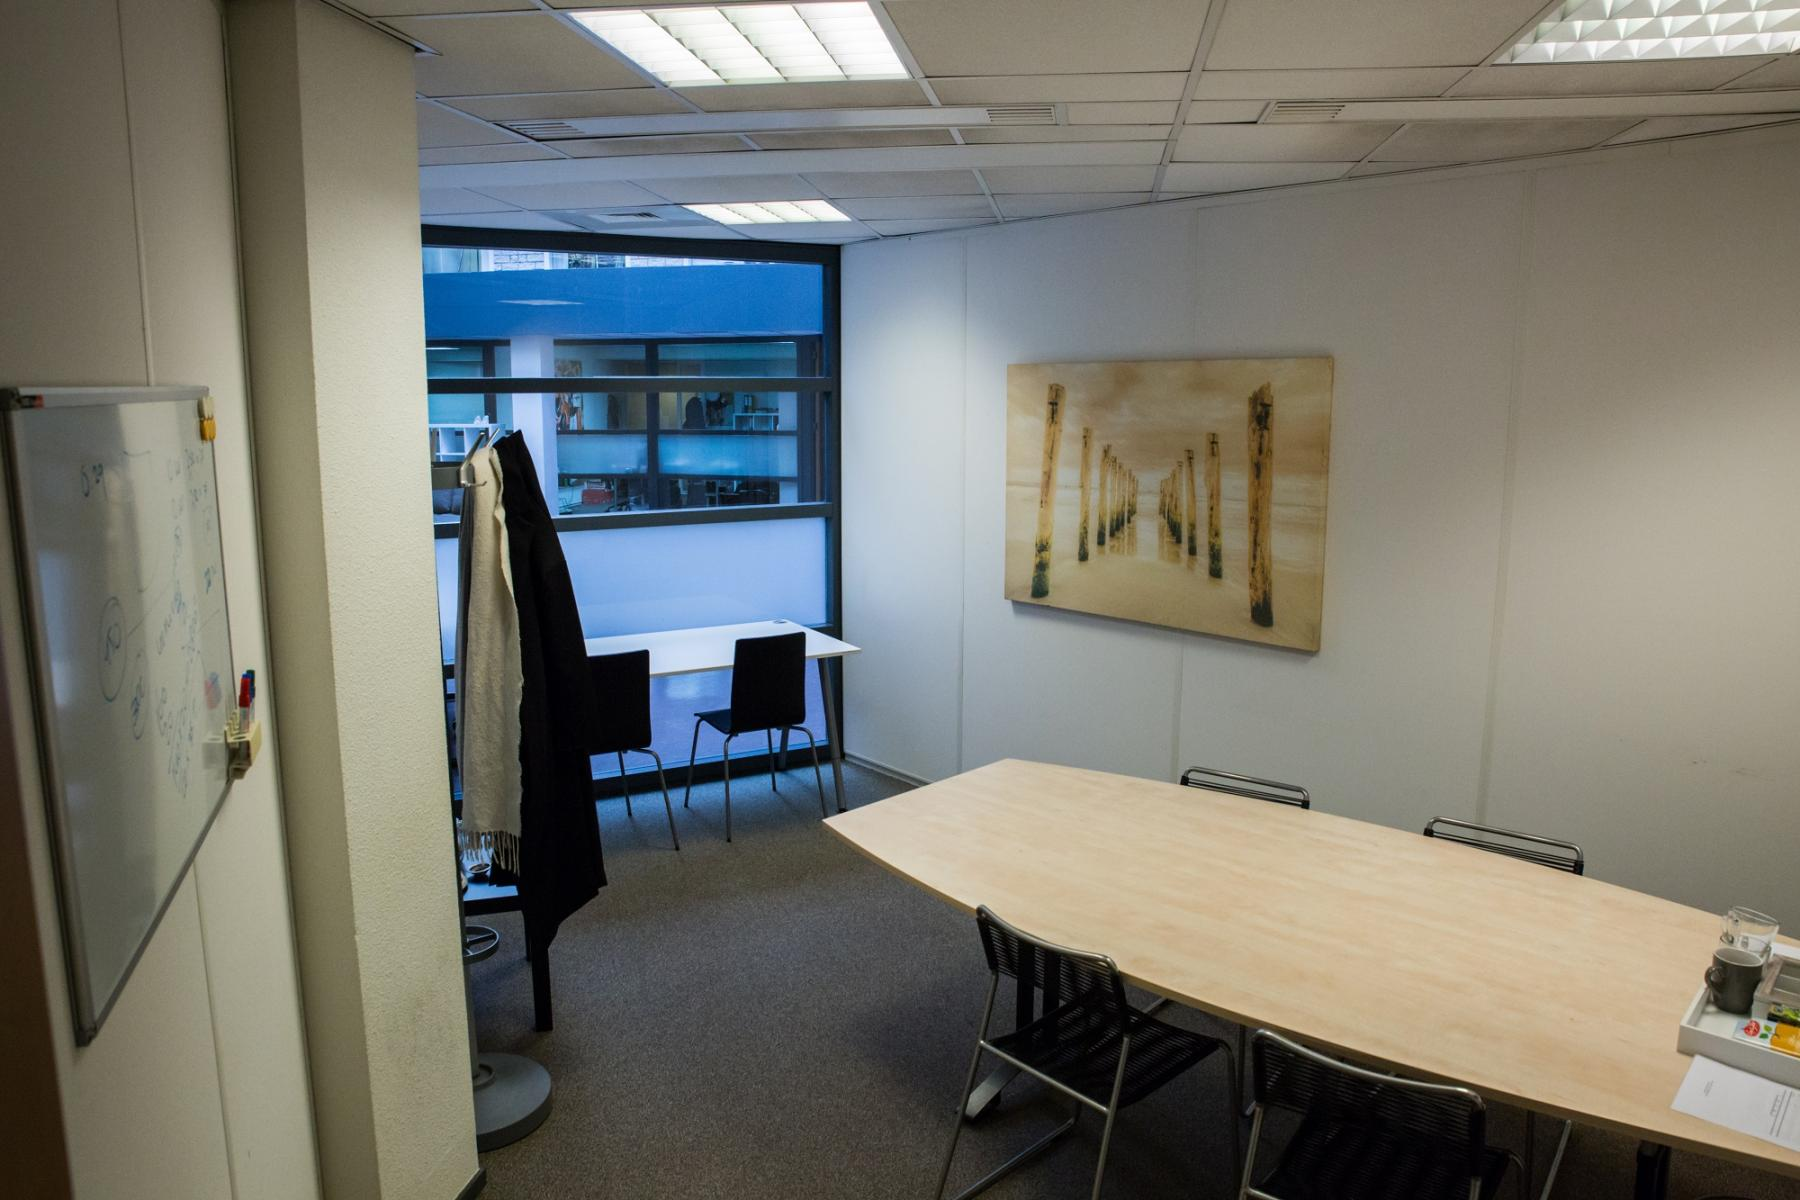 office space chairs tables paintings